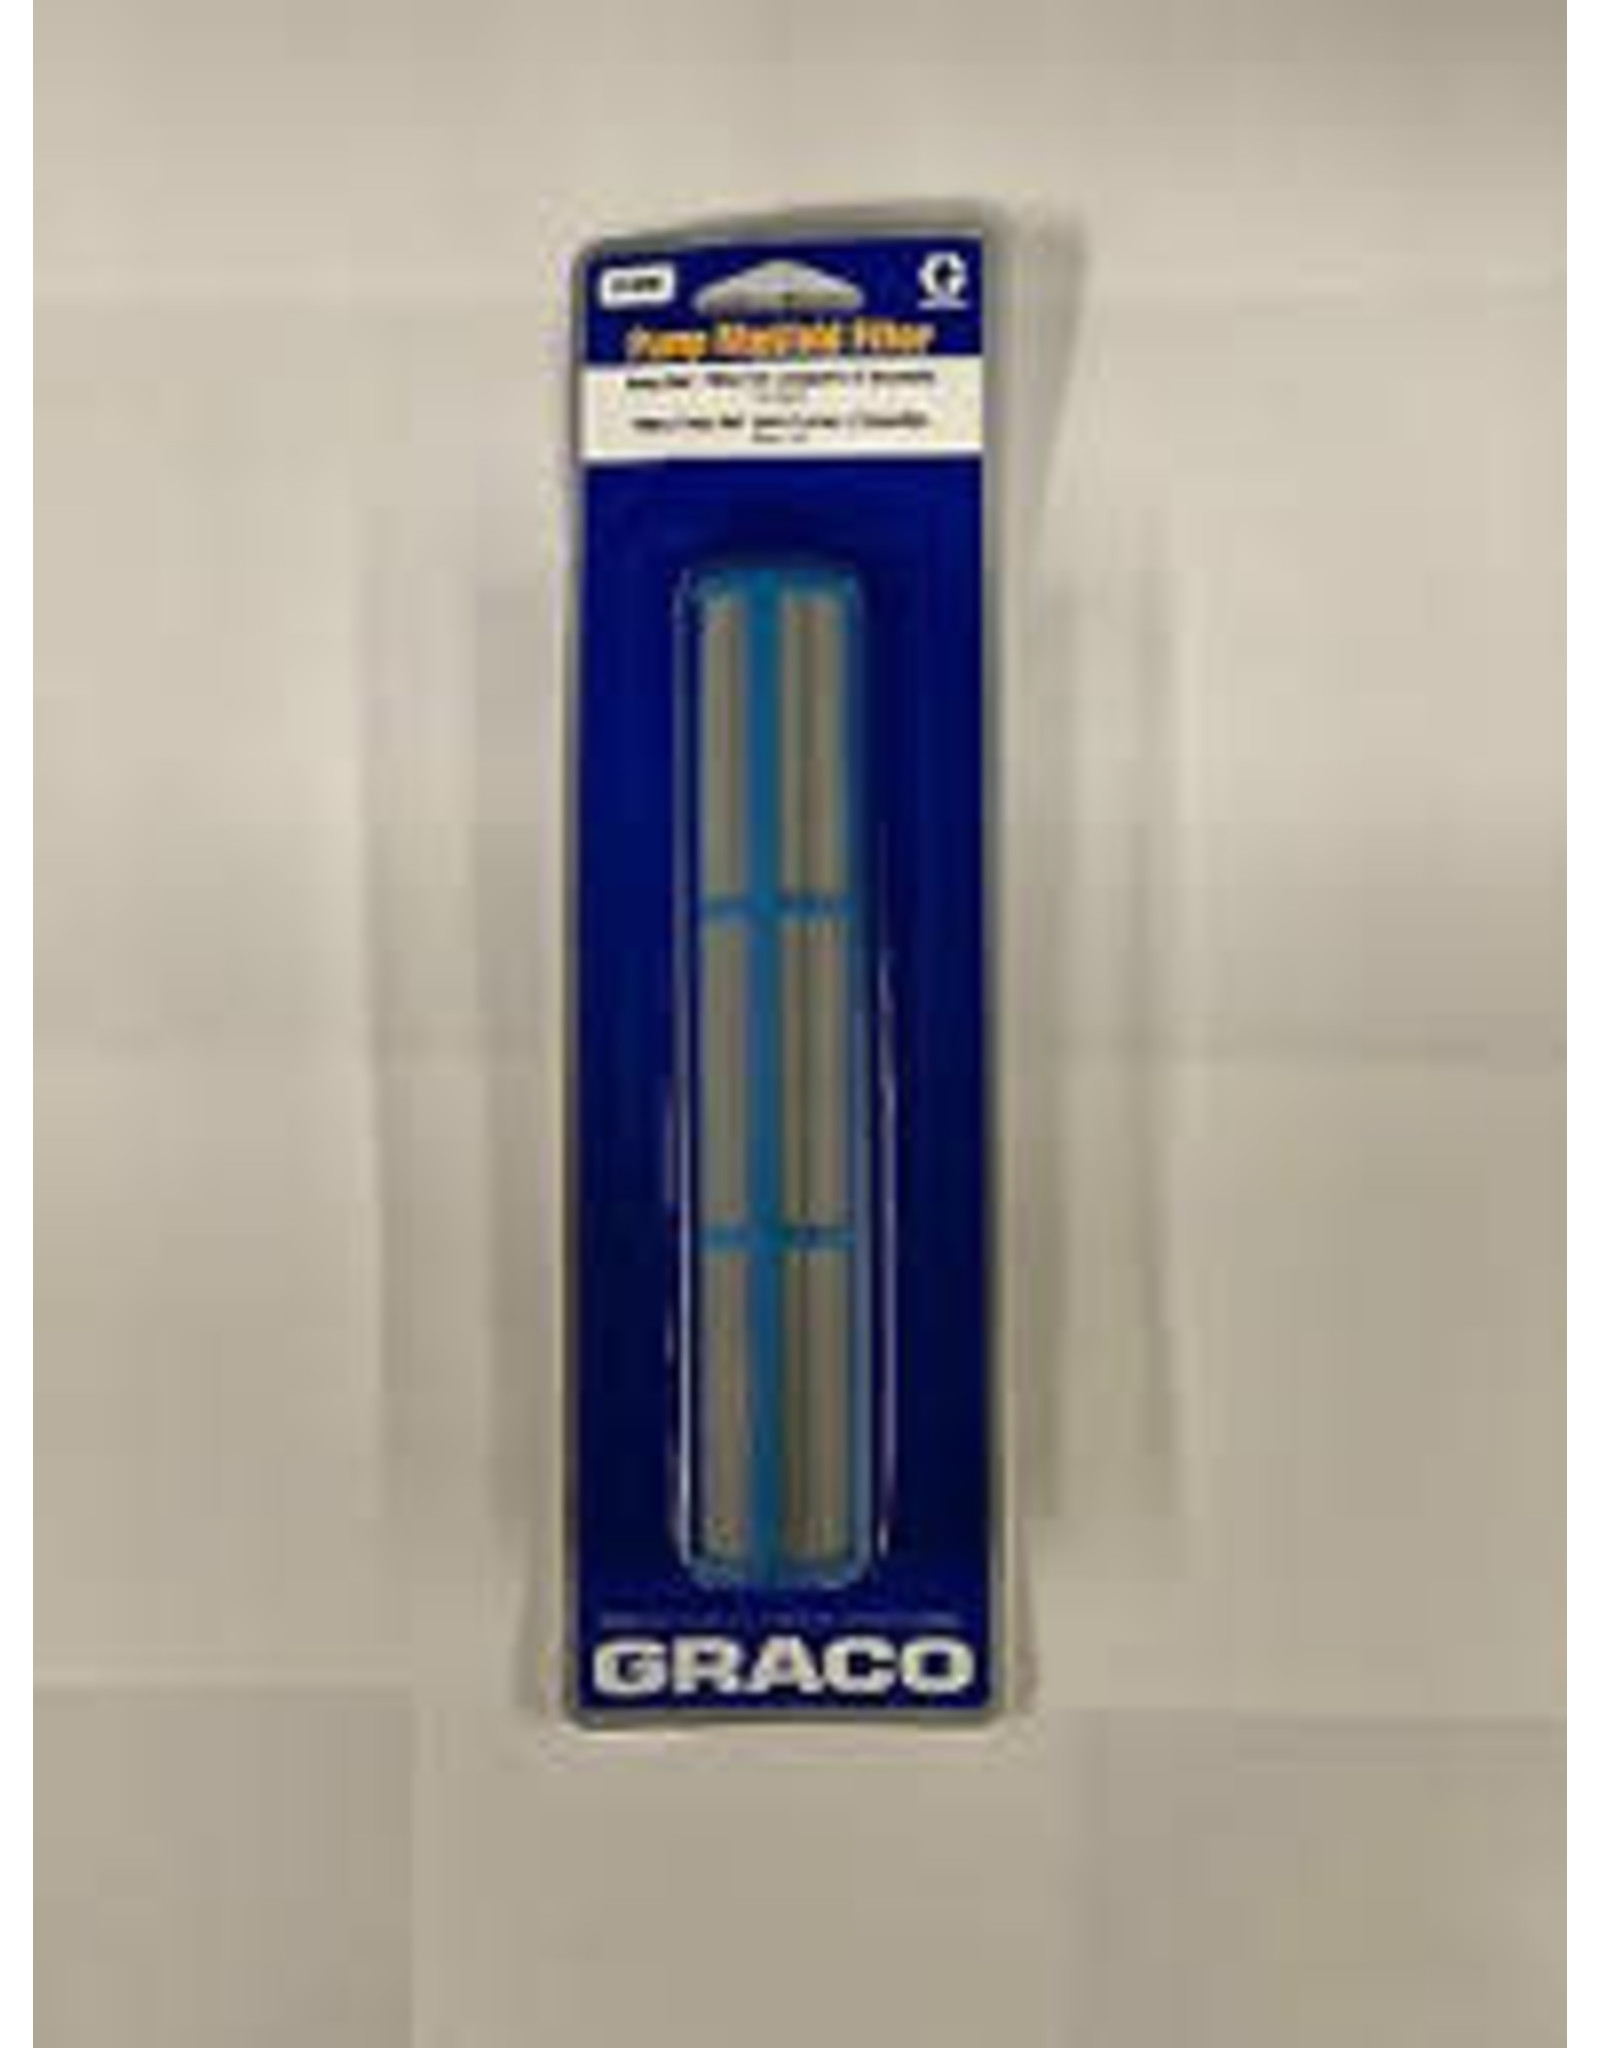 Graco 244068 Ultra filter 100 Mesh